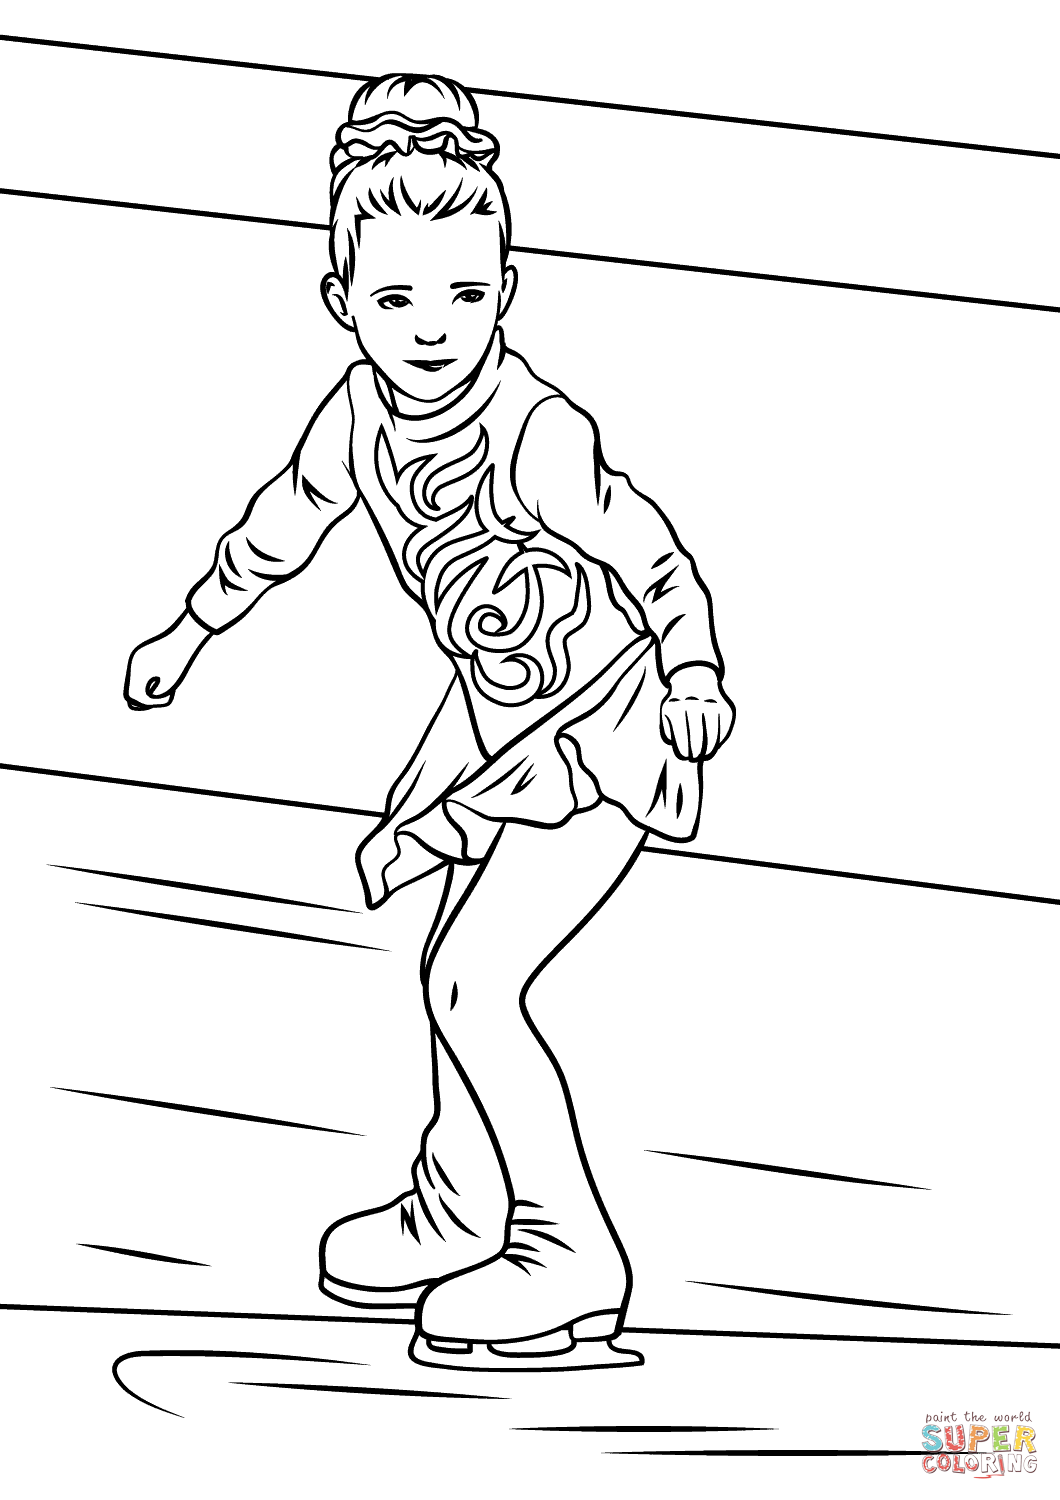 Roller Skate Coloring Page At Getcolorings